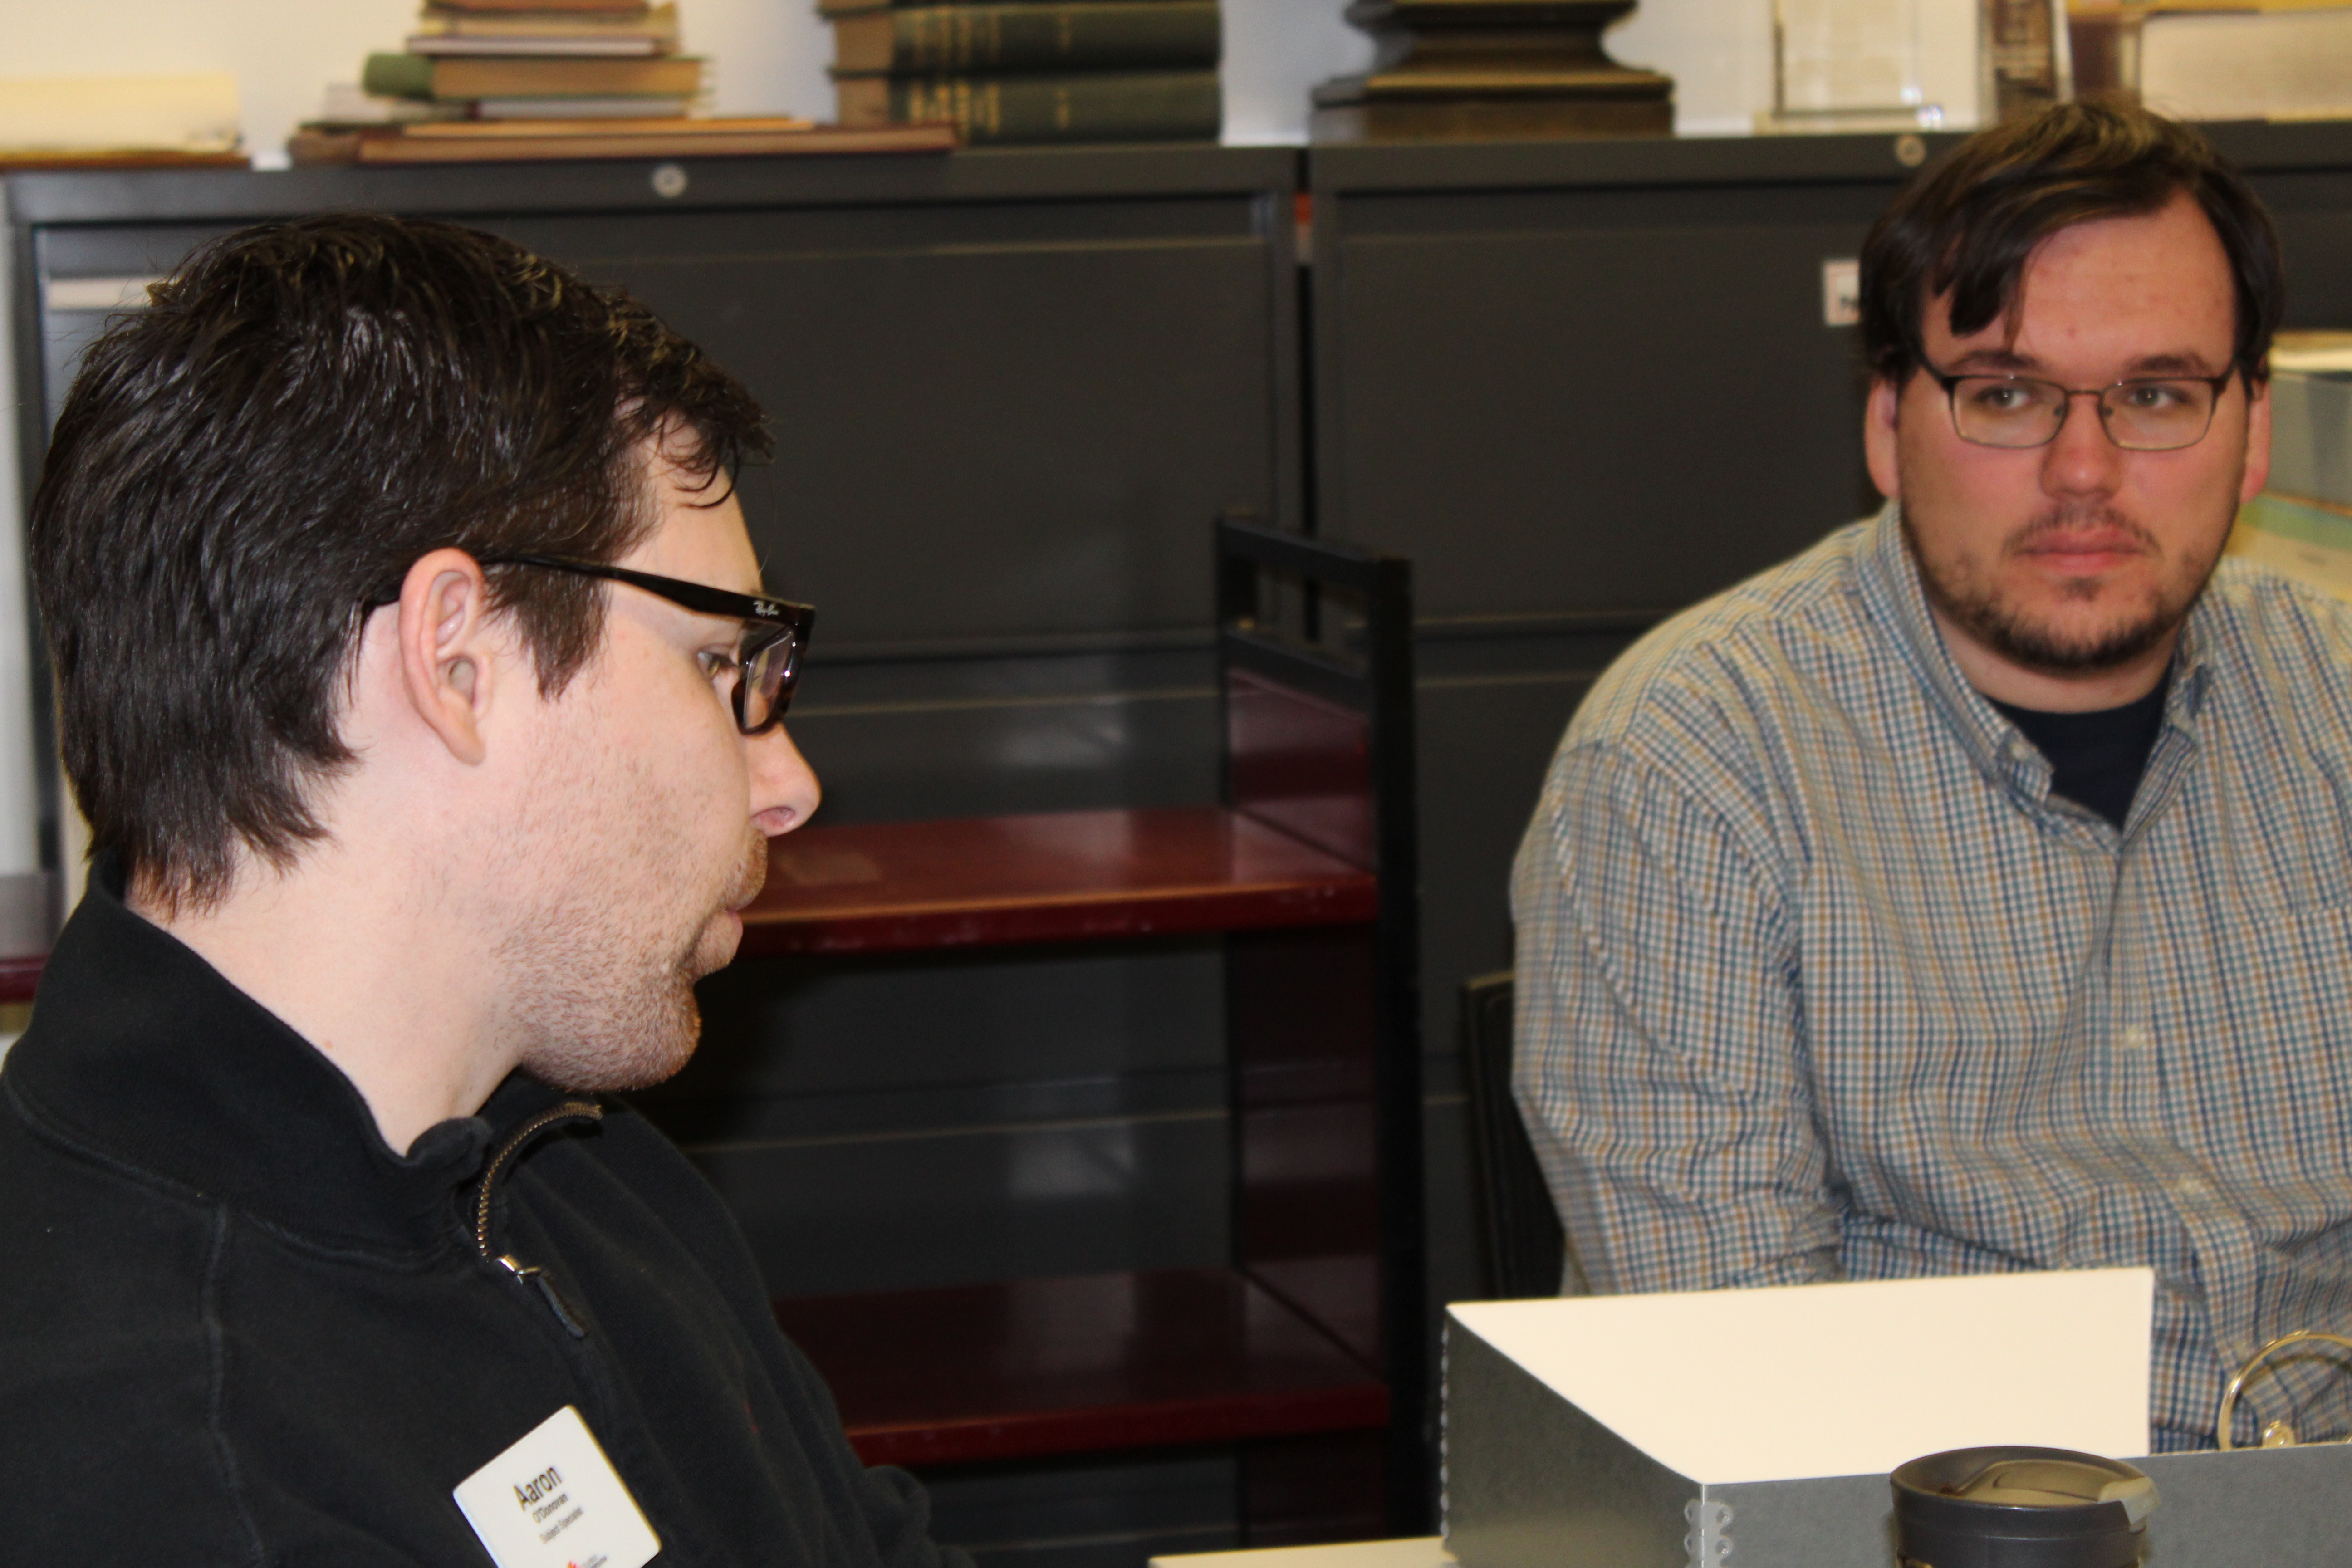 (L to R) Librarian Chuck Cody and Daniel Maharg discuss the internship project.